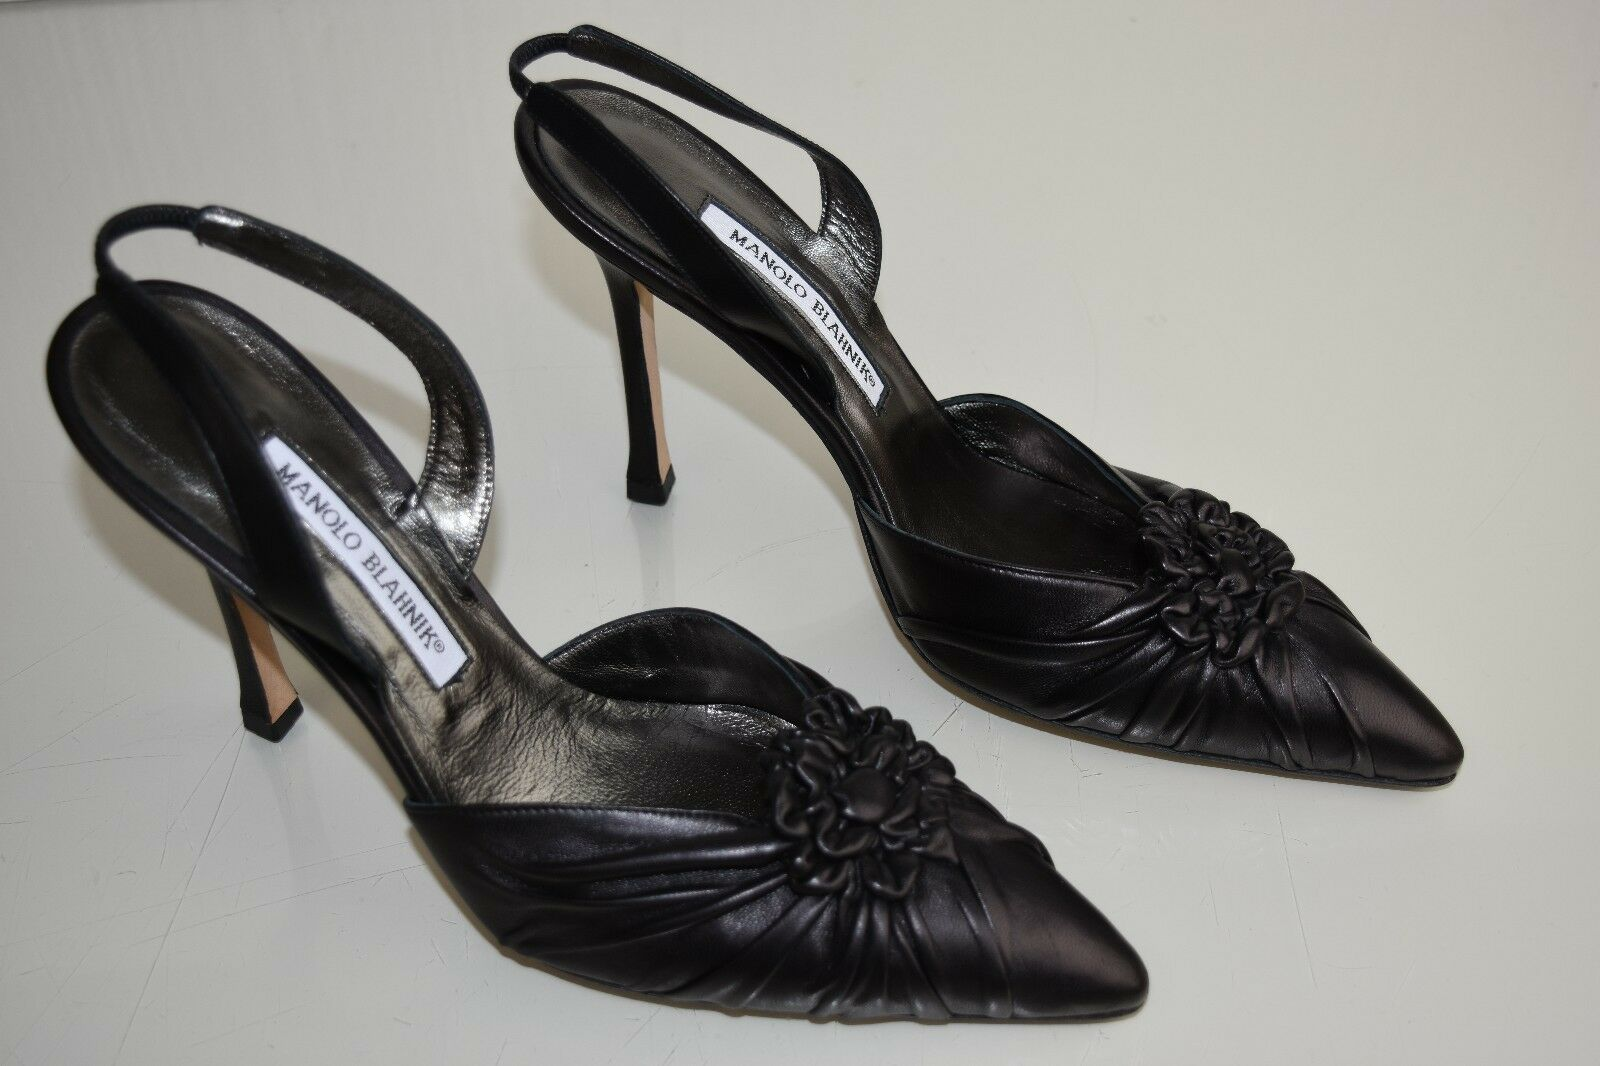 875 NEW Manolo Blahnik Malattiasl BLACK Leather Slings CAROLYNE Pumps shoes 39